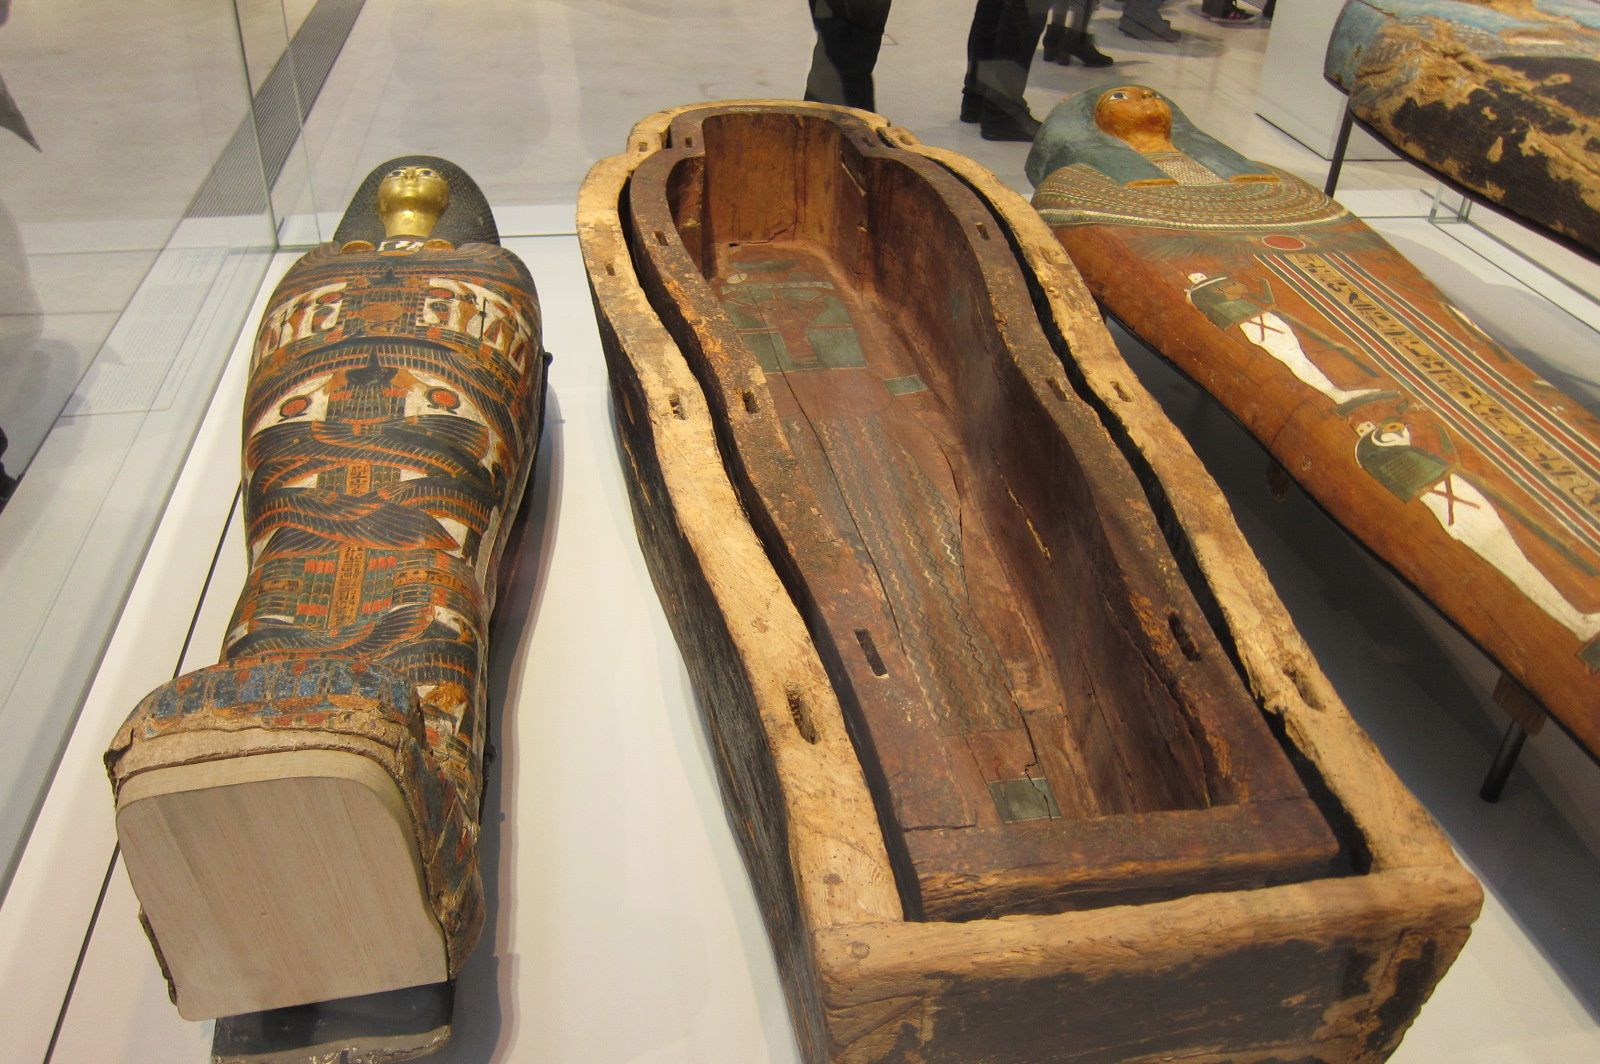 sarcophages-Egypte-Thebes-3-.JPG